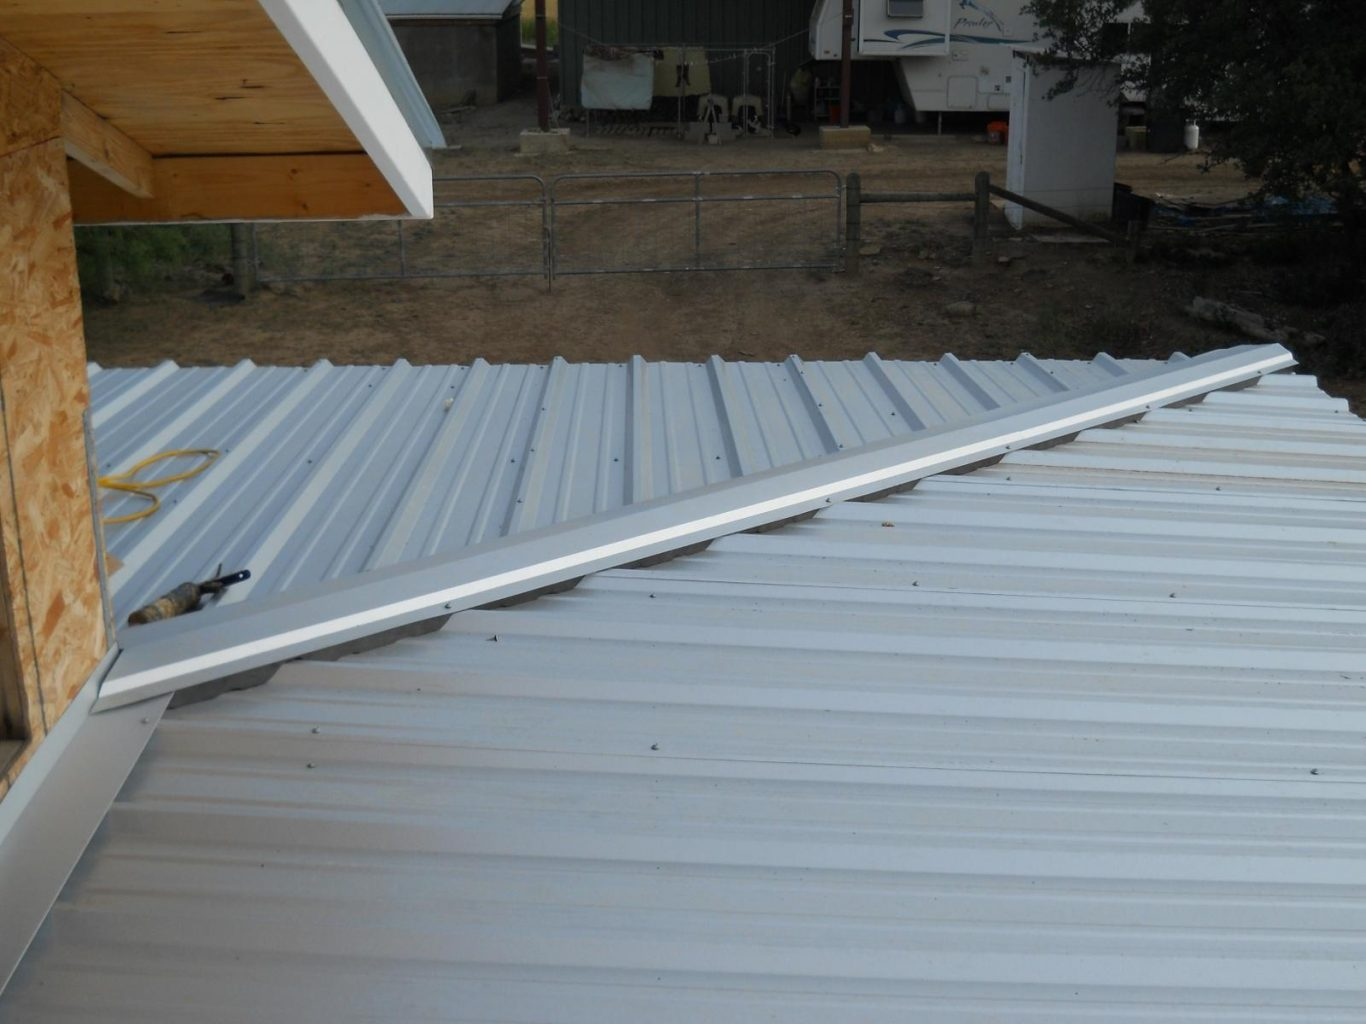 Installing a Metal Roof Over Shingles on a Budget